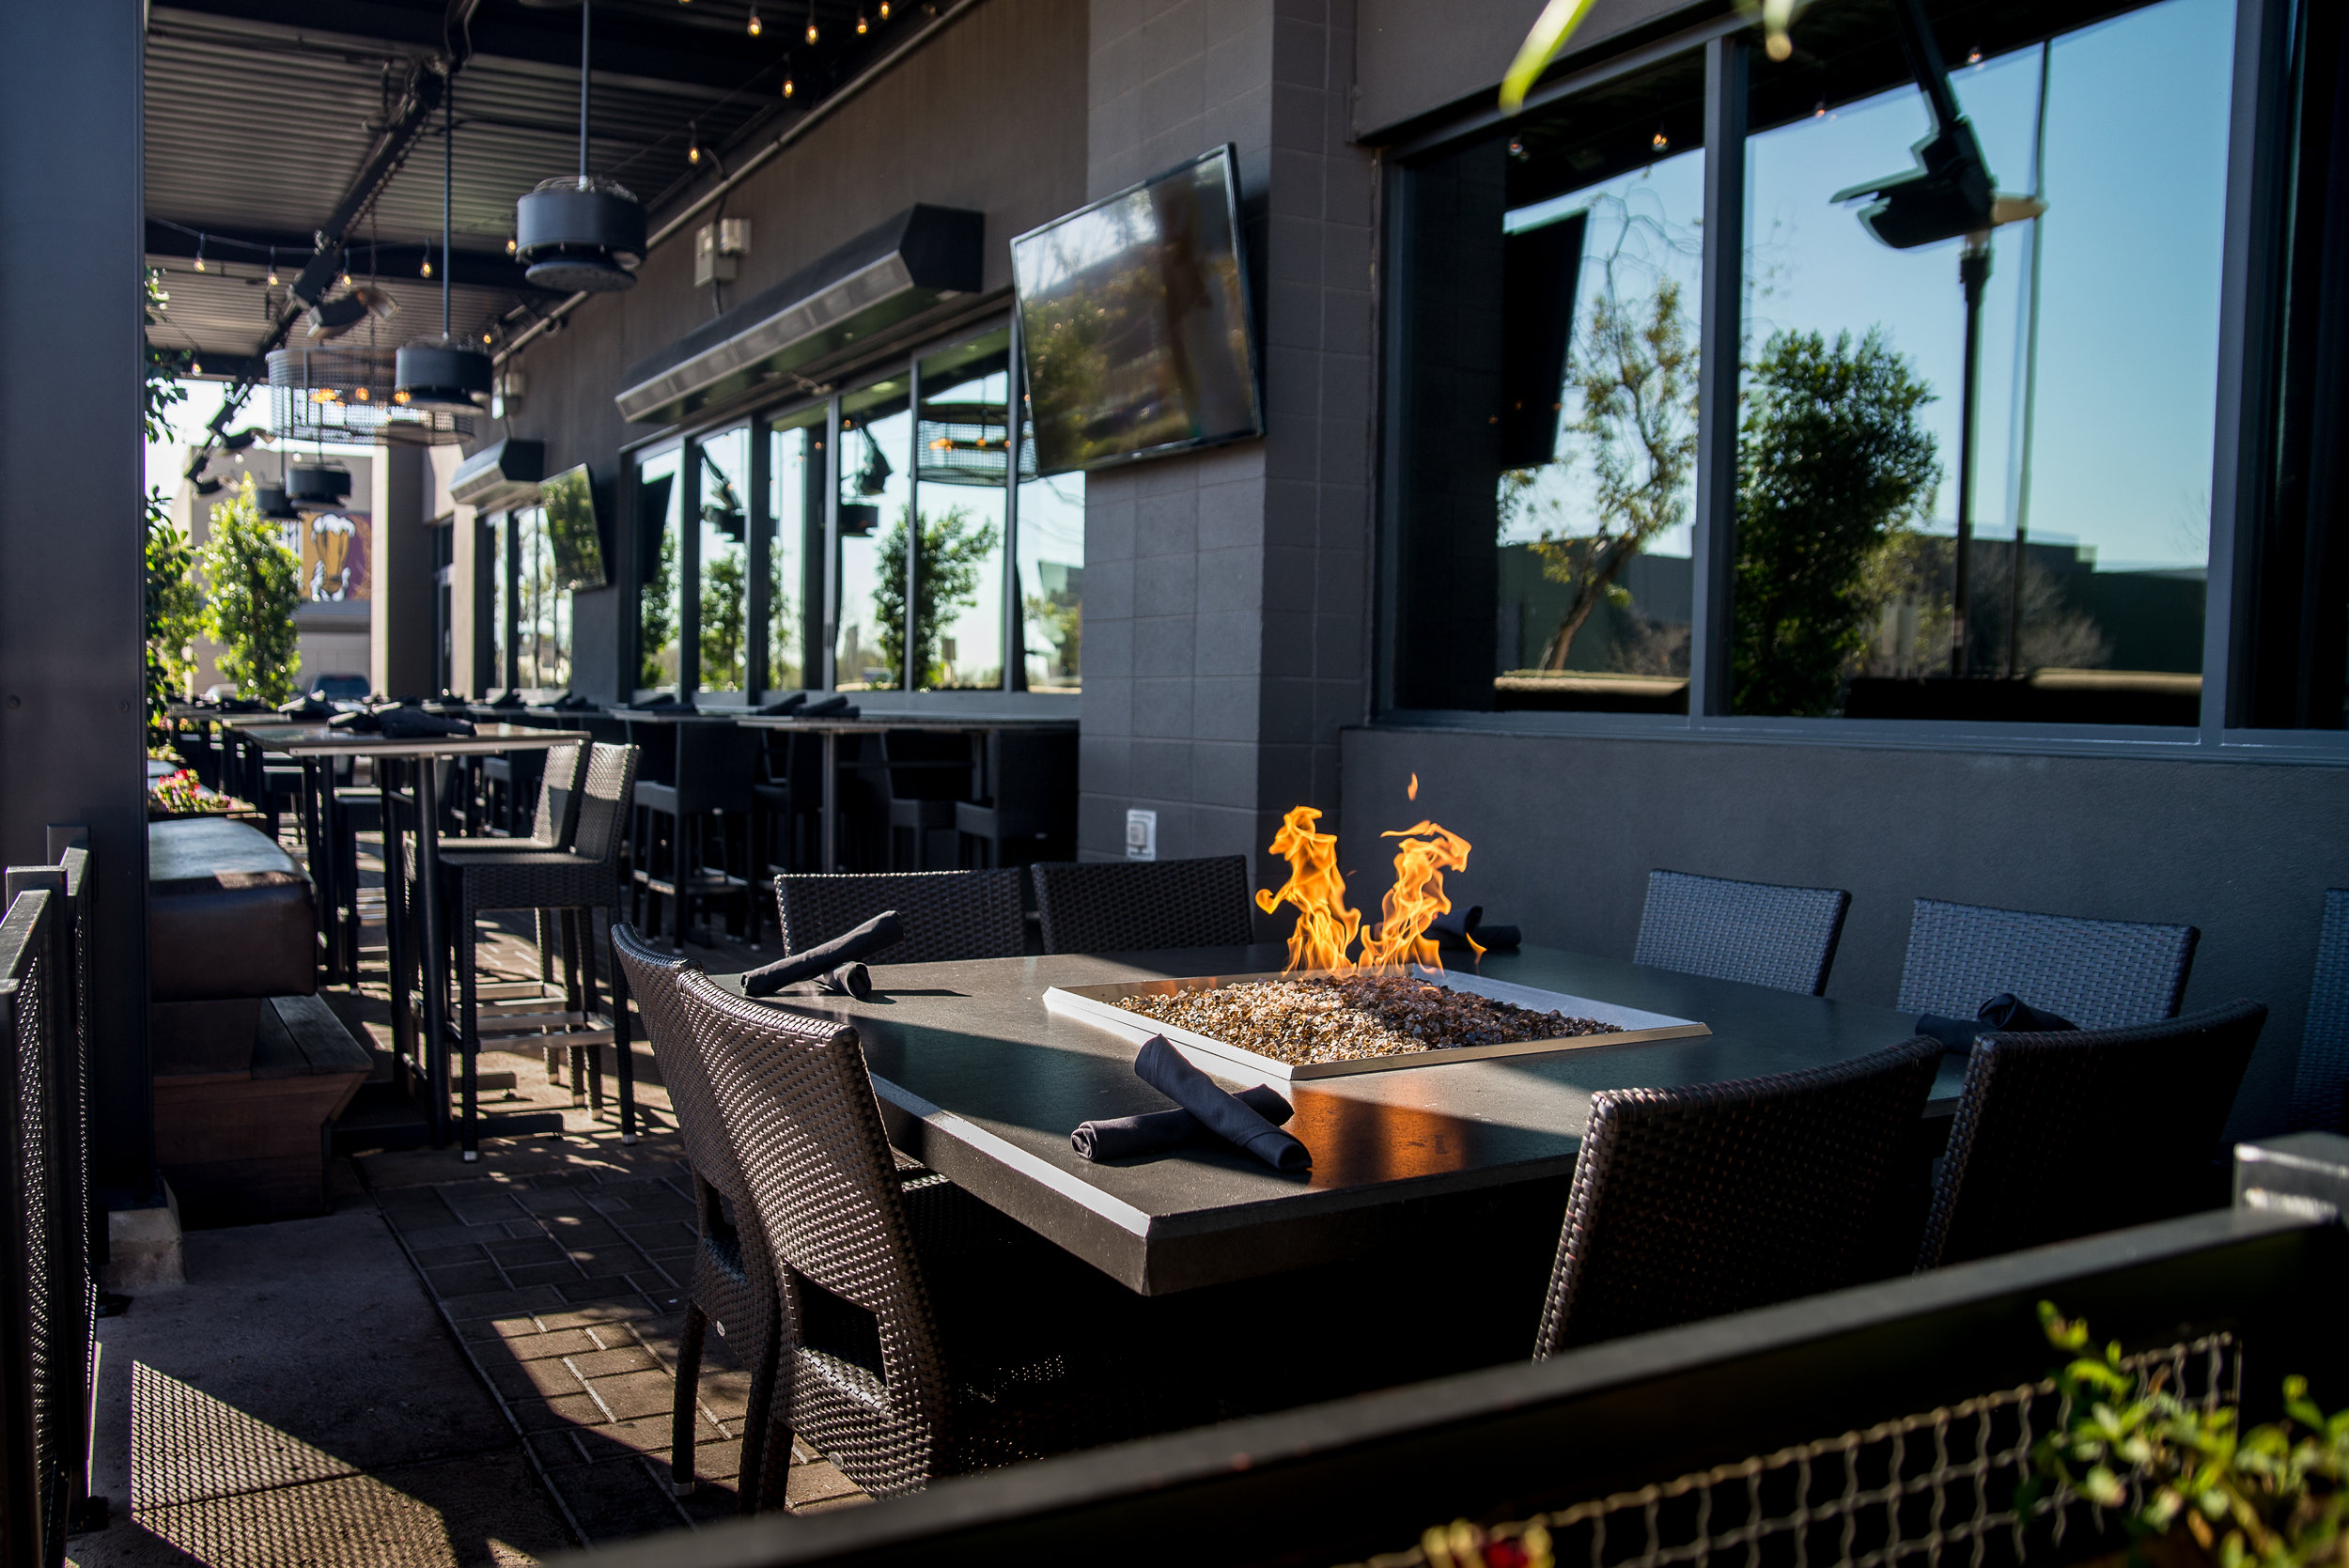 Private Eventsat Thirsty Lion - All CEG locations are now available for private parties and company events! Deanna Roderigues (AZ/CO/TX) and Stephanie Date (OR & Grand Central) are now taking inquires and helping market our interior and exterior event spaces. We've also launched a new private events specific website to help guests book events.https://www.thirstylionevents.com/